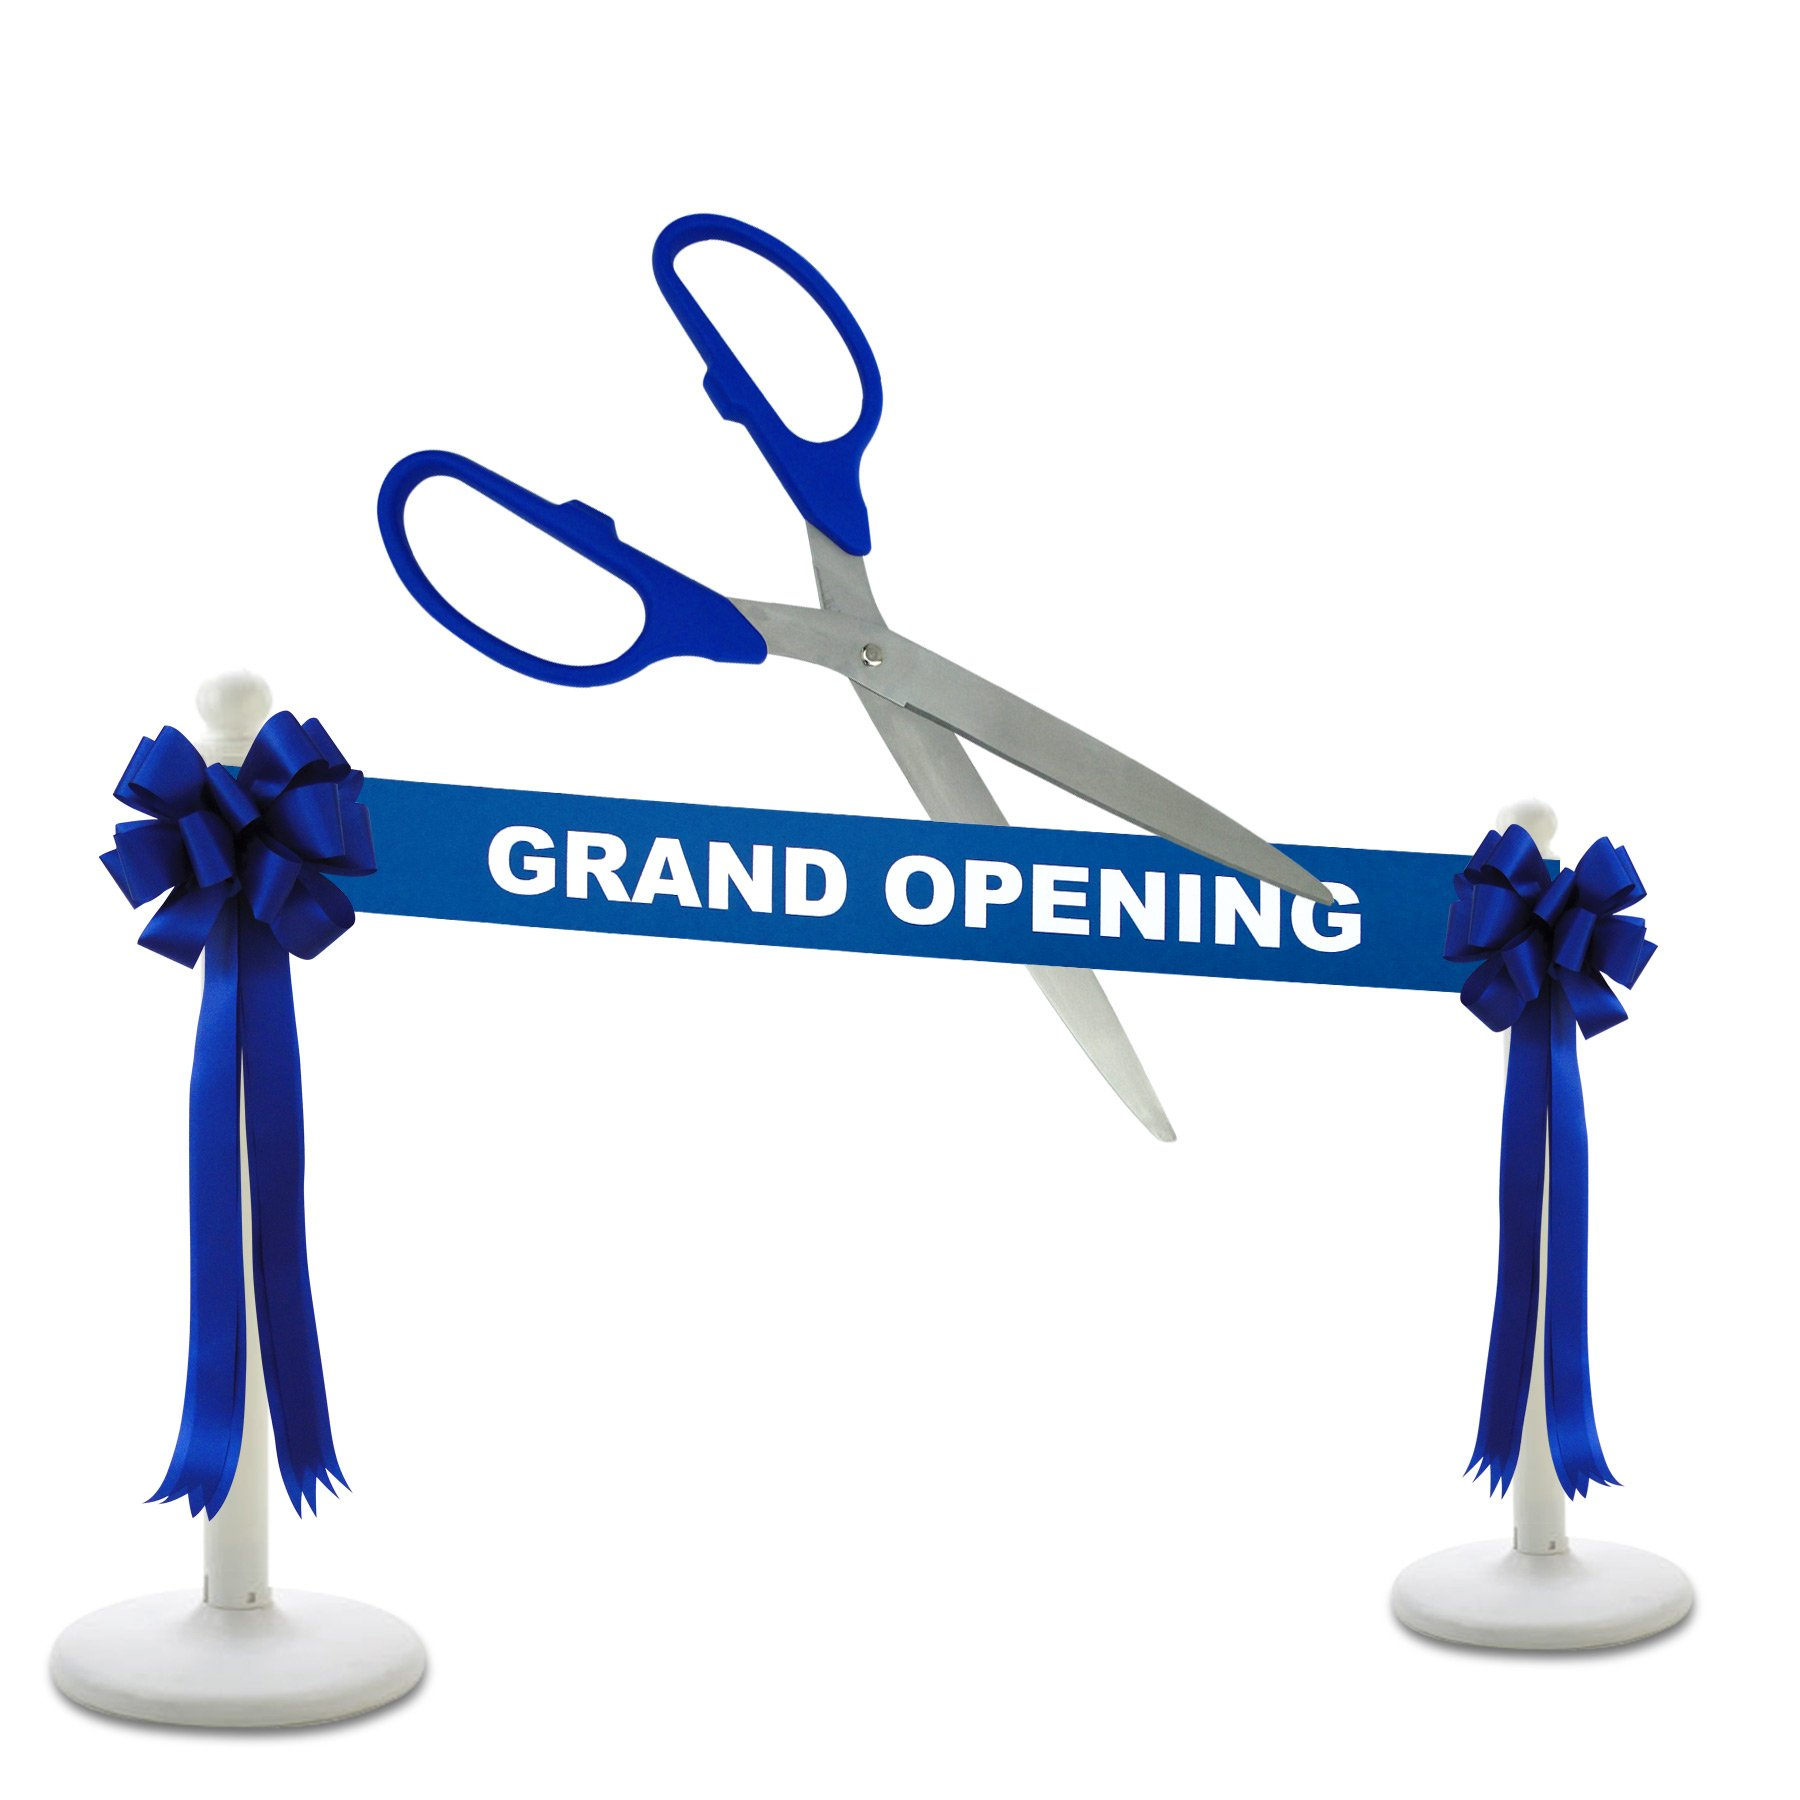 Deluxe Grand Opening Kit - 36'' Blue/Silver Ceremonial Ribbon Cutting Scissors with 5 Yards of 6'' Royal Blue Grand Opening Ribbon, 2 Royal Blue Bows and 2 White Plastic Stanchions